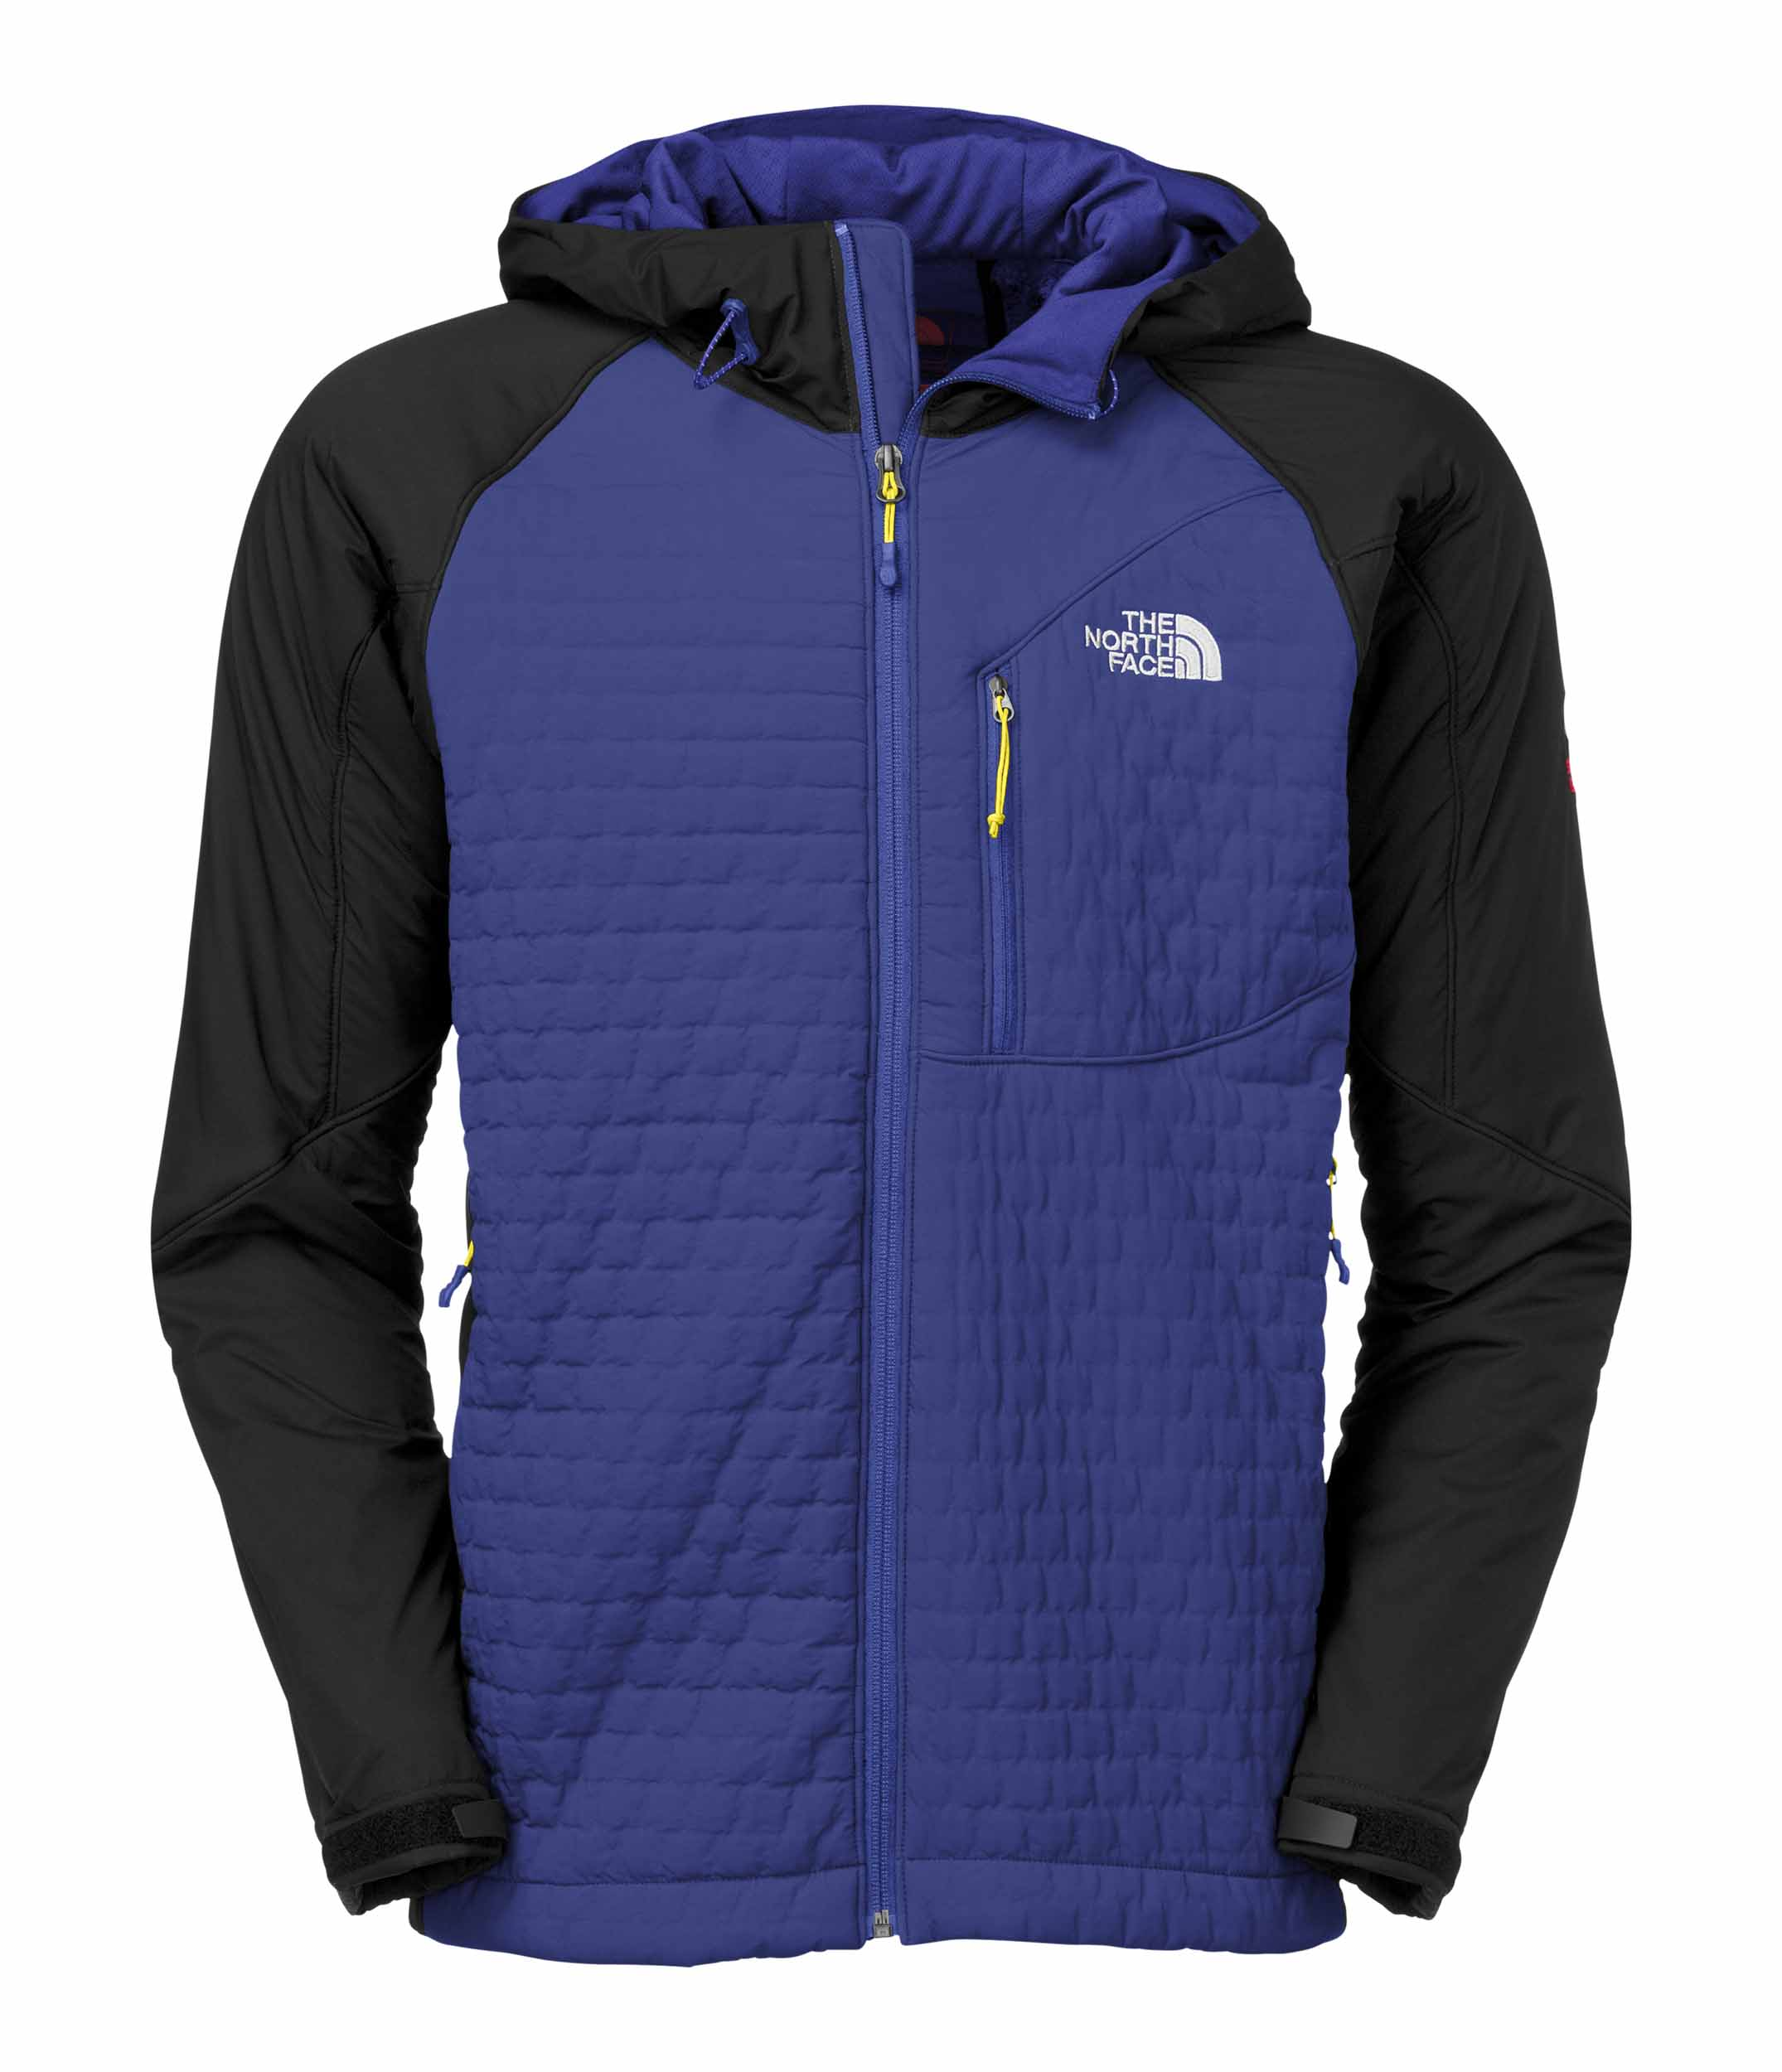 The North Face men's Polar Hooded Jacket - The Polar Hooded Jacket is a sleek, hybrid, body-mapped soft shell that combines the warmth of a puffy, the moisture transport properties of fleece, and the protection of a soft shell. The body is made of new Polartecr Power Shieldr High Loft²  soft shell fabric that's both 25 percent warmer and 25 percent lighter thanks to a revolutionary new lamination technique. A new version of Polartecr Thermal Pror is used in the sides, underarms, and hood to insulate without inhibiting breathability and moisture vapor transport. Unlike down or classic synthetic insulation, this version of Polartecr Thermal Pror is highly stable, so The North Face was able to pair it with a much more open, breathable fabric on the inside to significantly improve moisture movement and eliminate the vapor barrier phenomenon of most puffies. The result is the warmest, lightest, most compressible soft shell on the market.